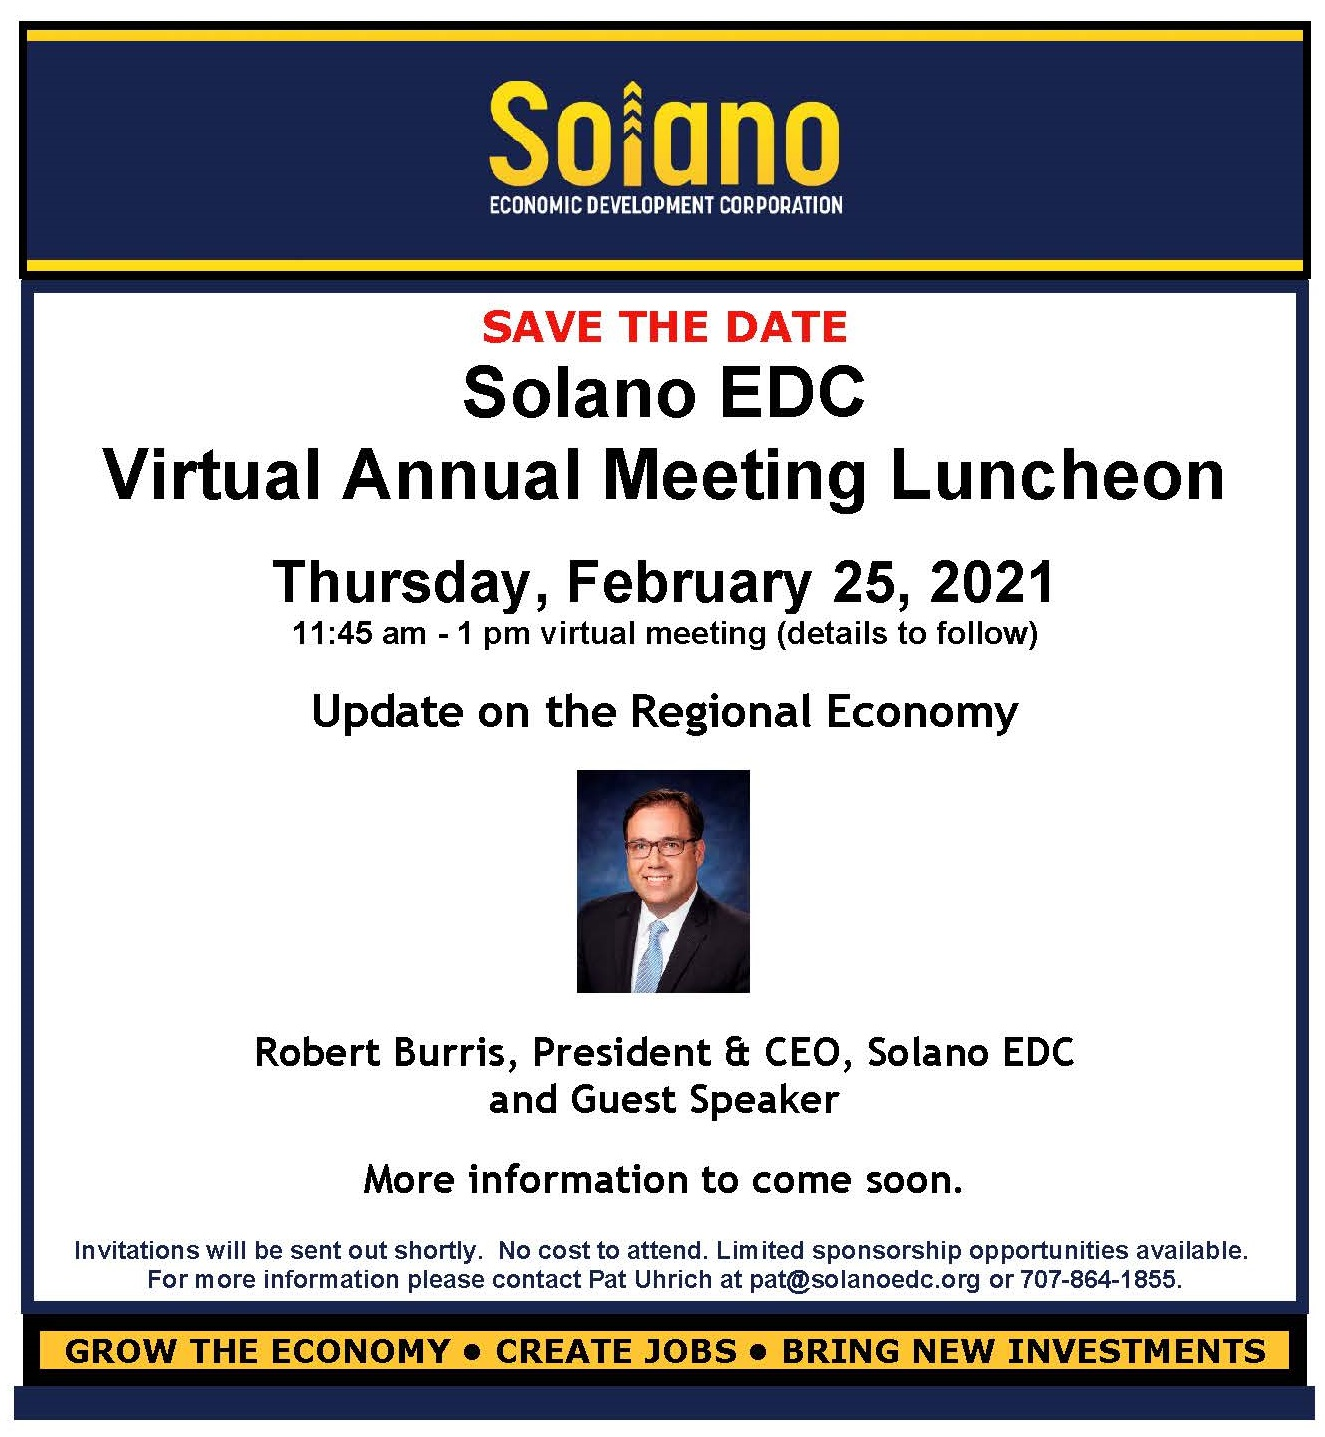 Save the Date Solano EDC February 25 Virtual Annual Meeting blog featured image